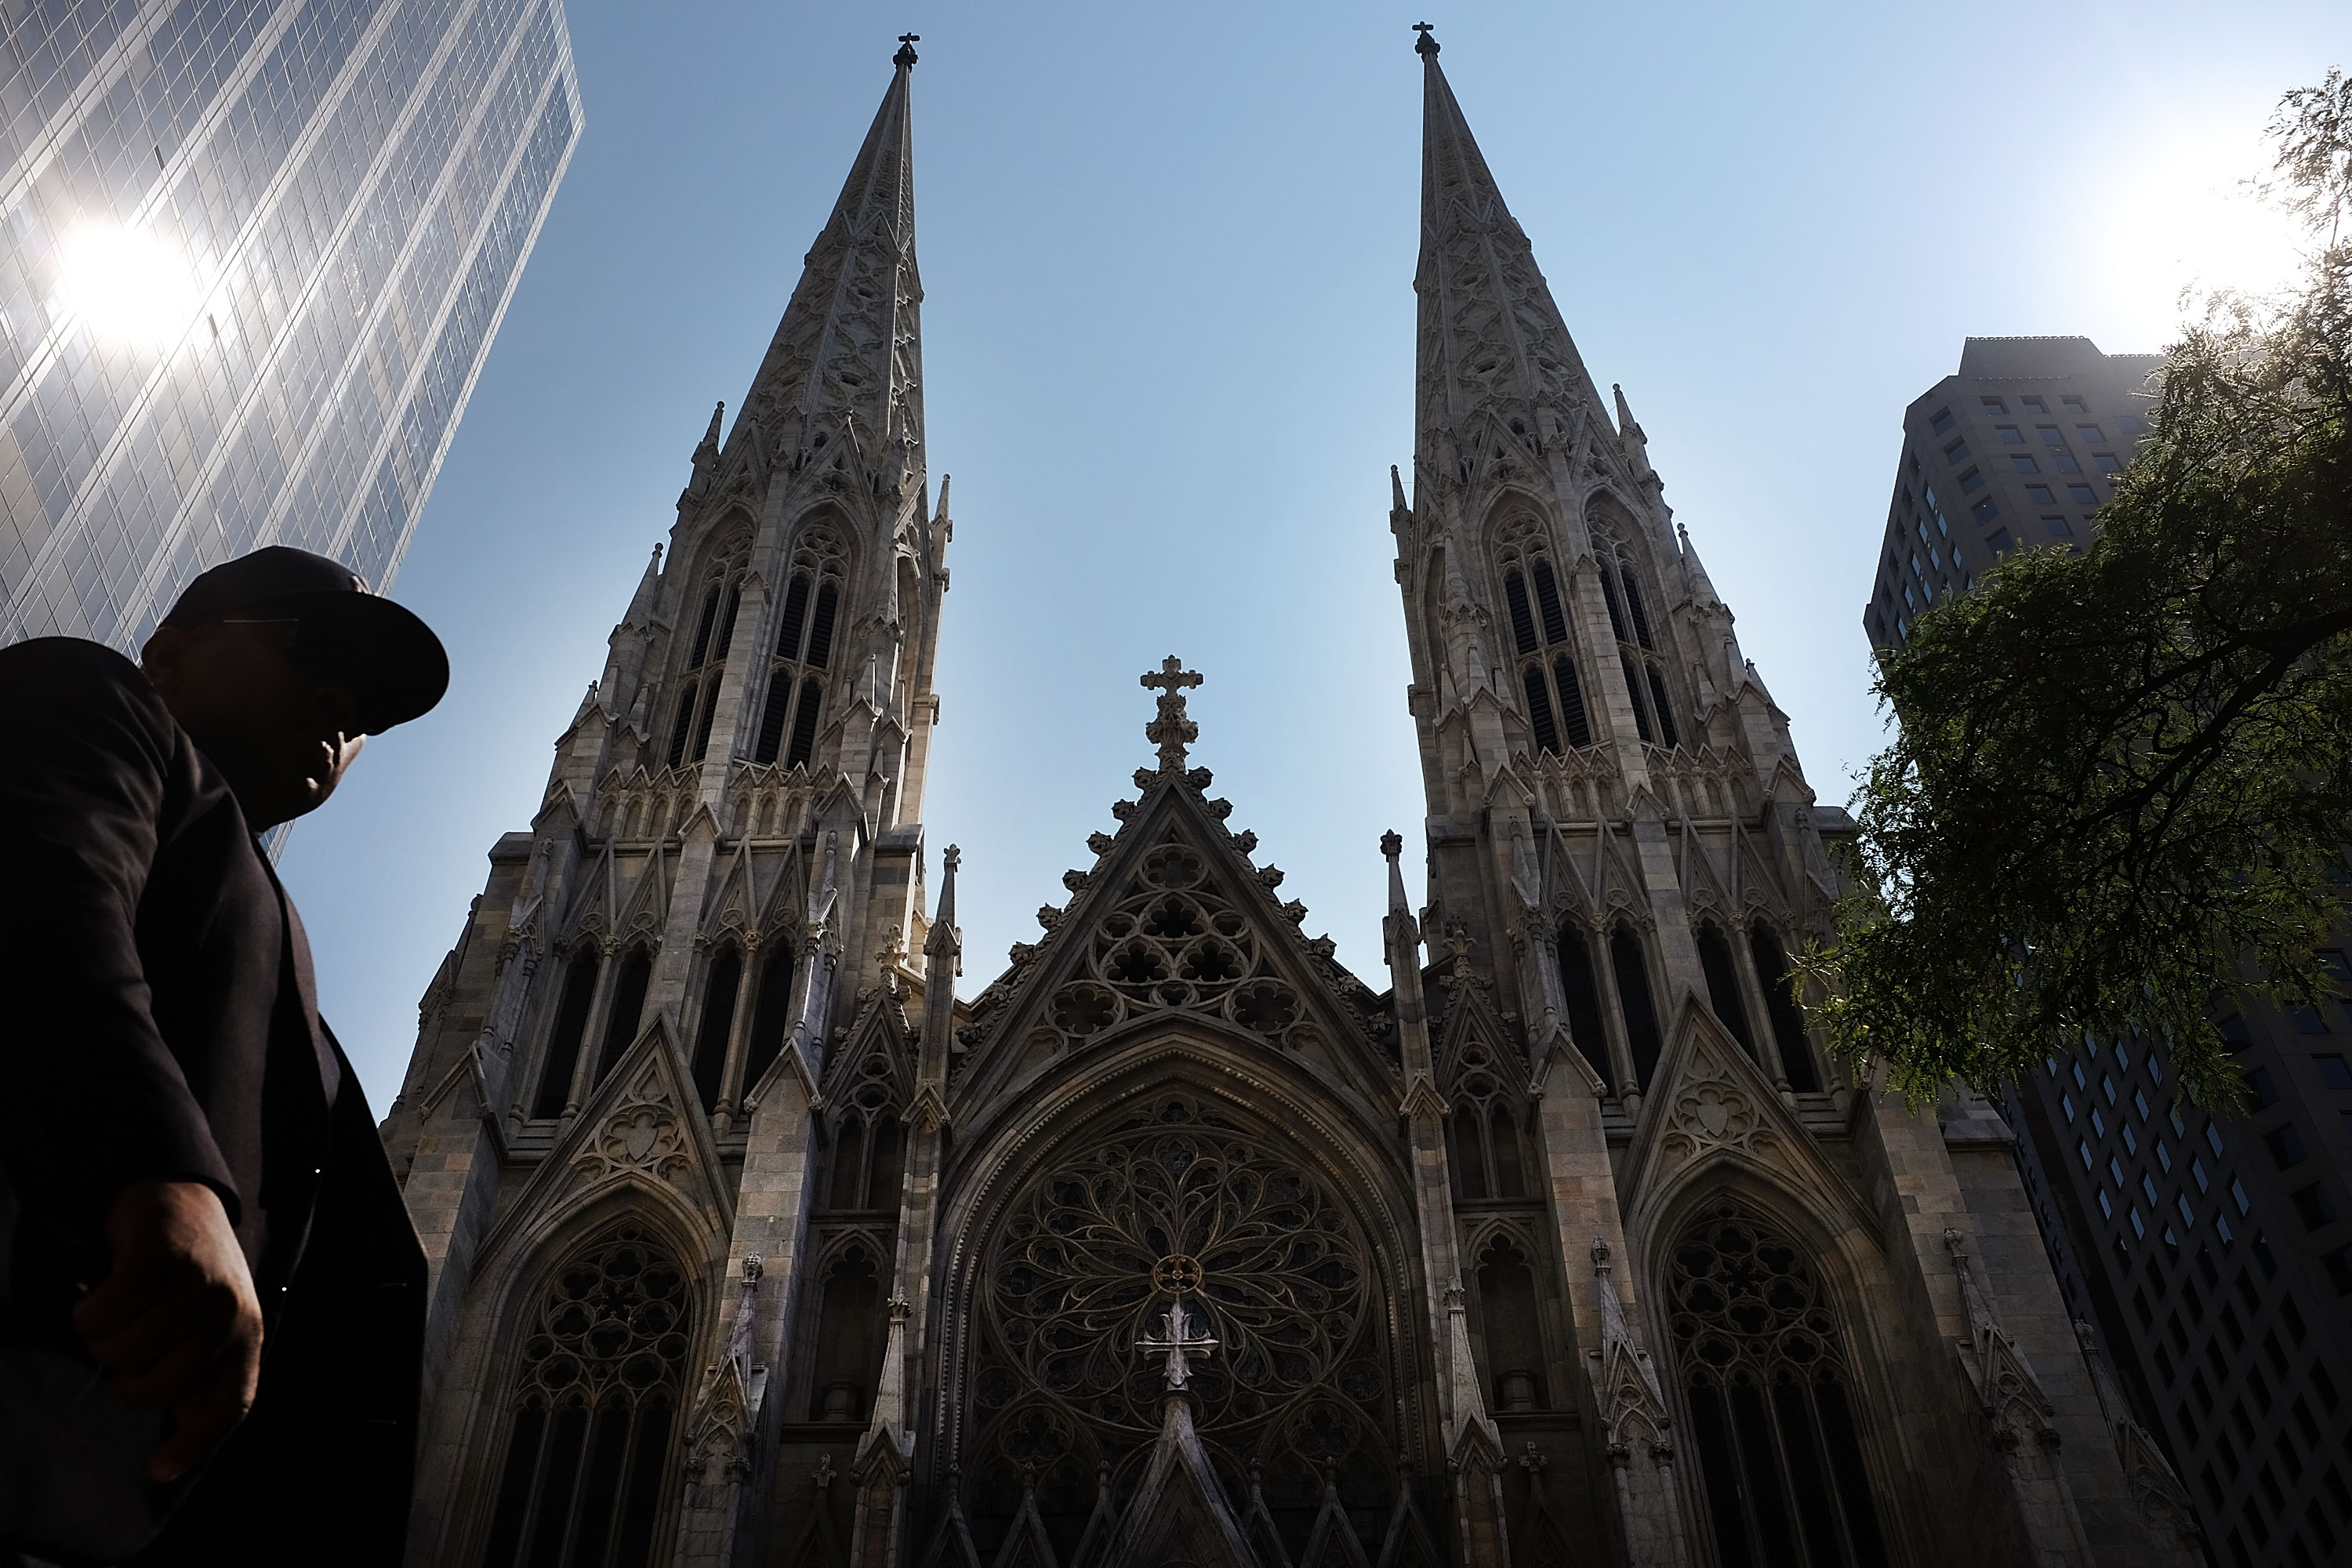 St. Patrick's Cathedral in New York in 2015.